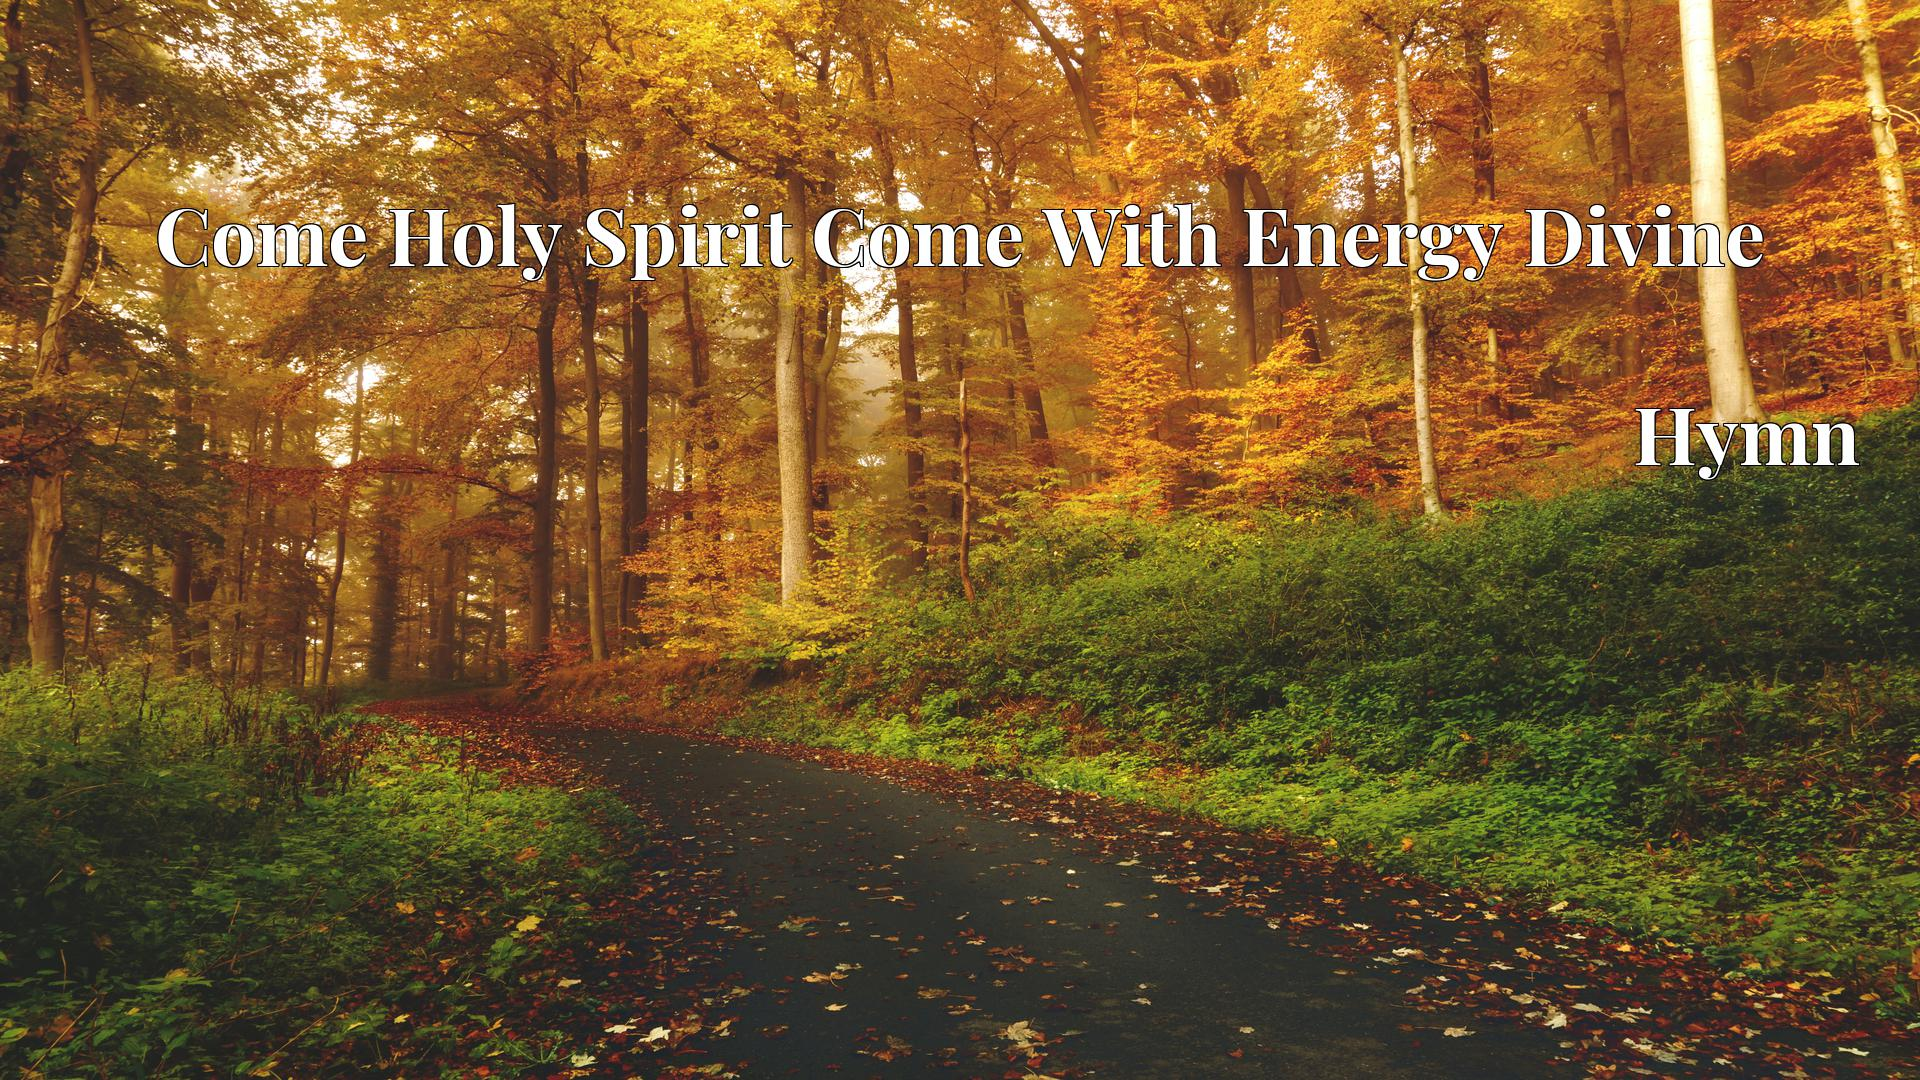 Come Holy Spirit Come With Energy Divine - Hymn